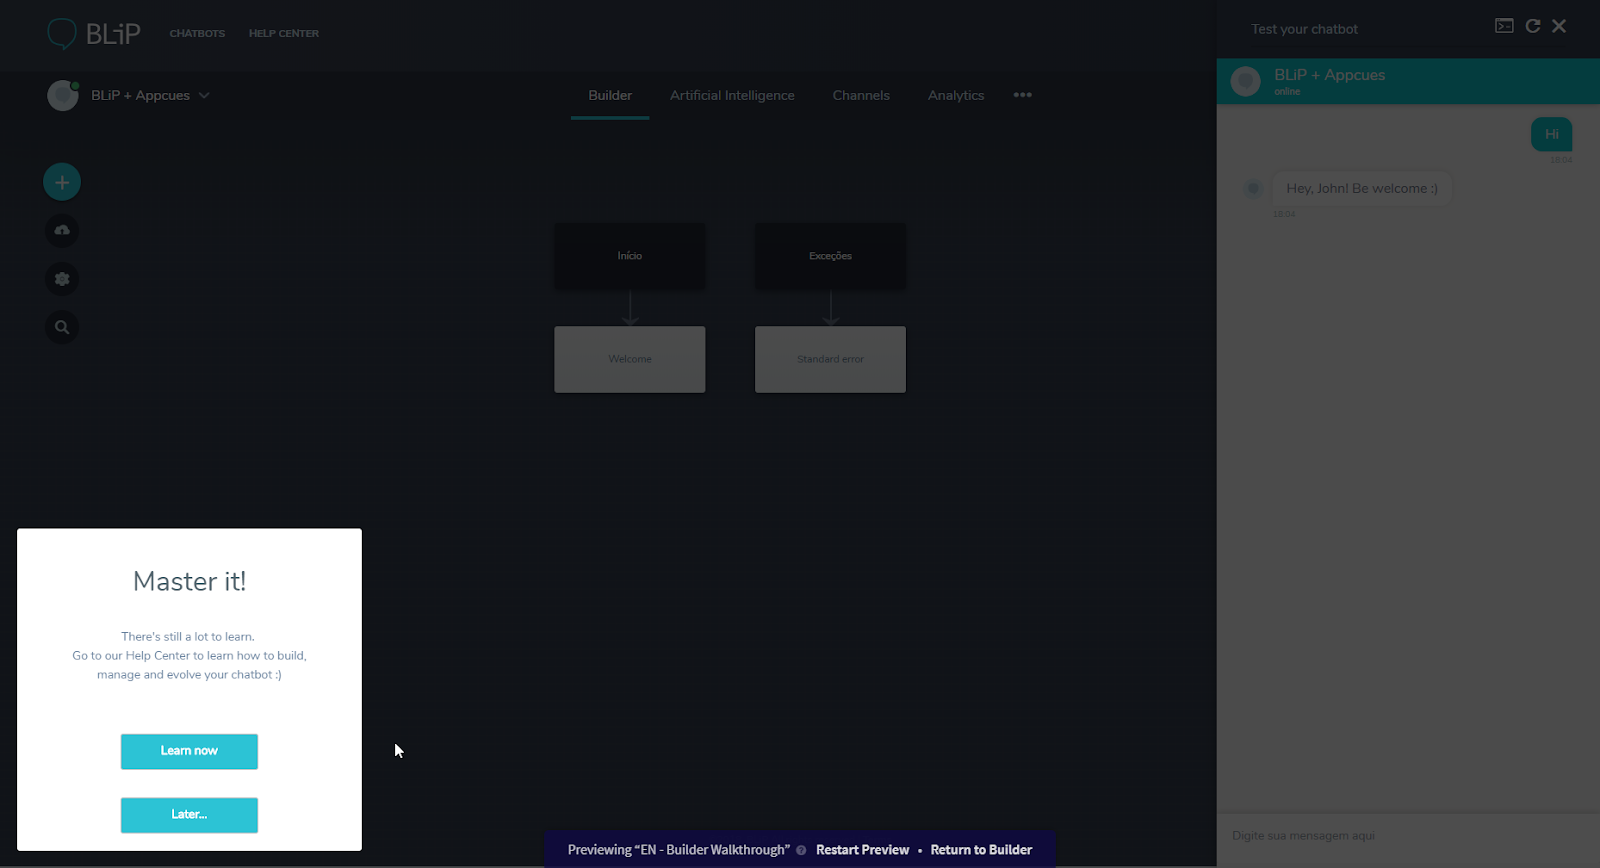 this is a screenshot of someone previewing their appcues flow. this is a screen from the onboarding flow of BLiP, a chatbot builder platform. this screenshot shows a slideout against a darkened background